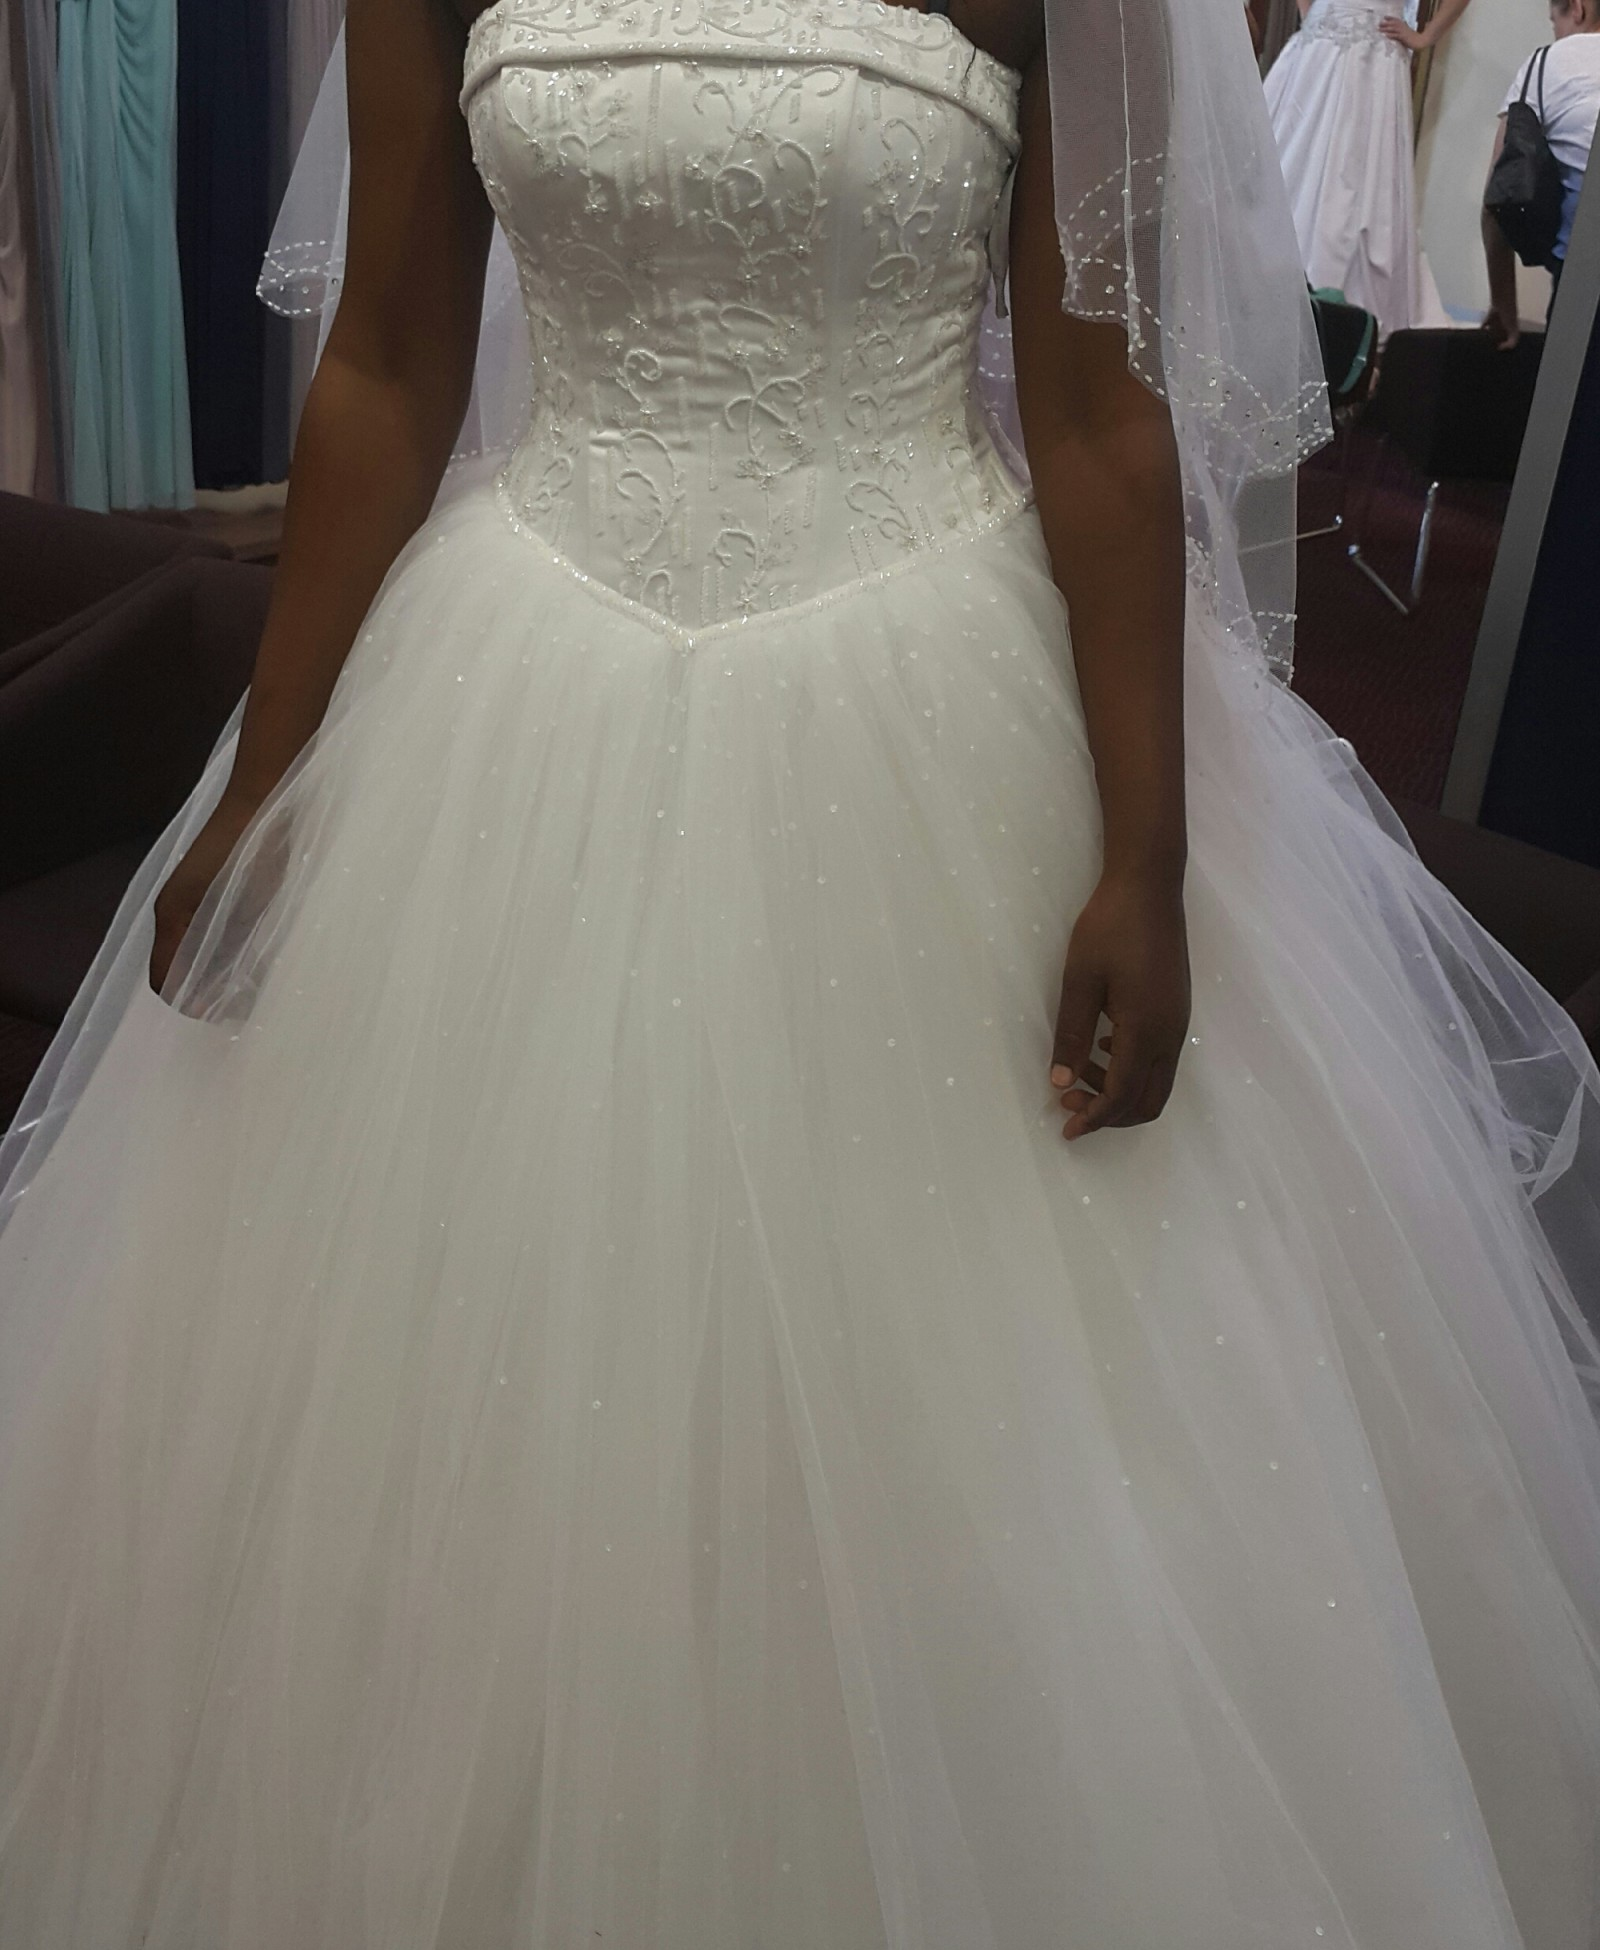 Wedding Dresses For Over 50 Uk: Bride & Co Satin Cuffed Bodice And Full Tulle Skirt Second